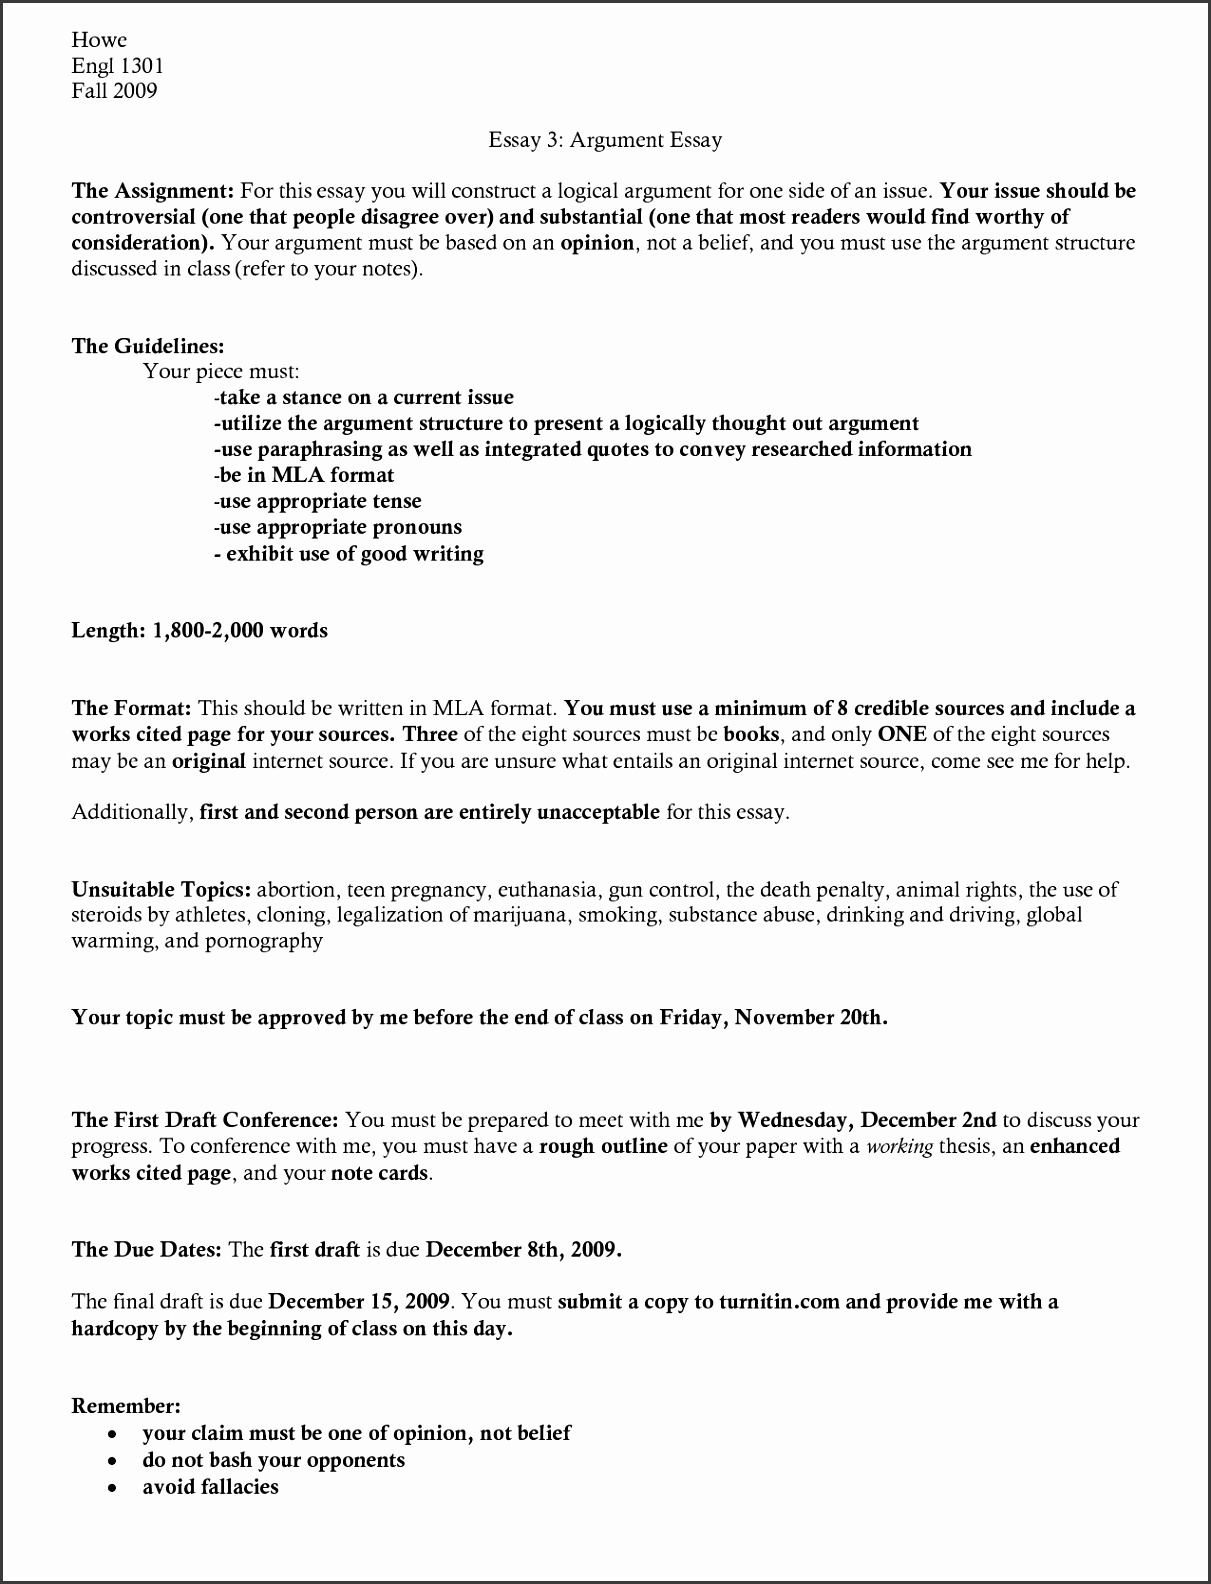 020 Research Paper How To Format Mla Style Template Uguco Best Of Persuasive Essay Fantastic A Full